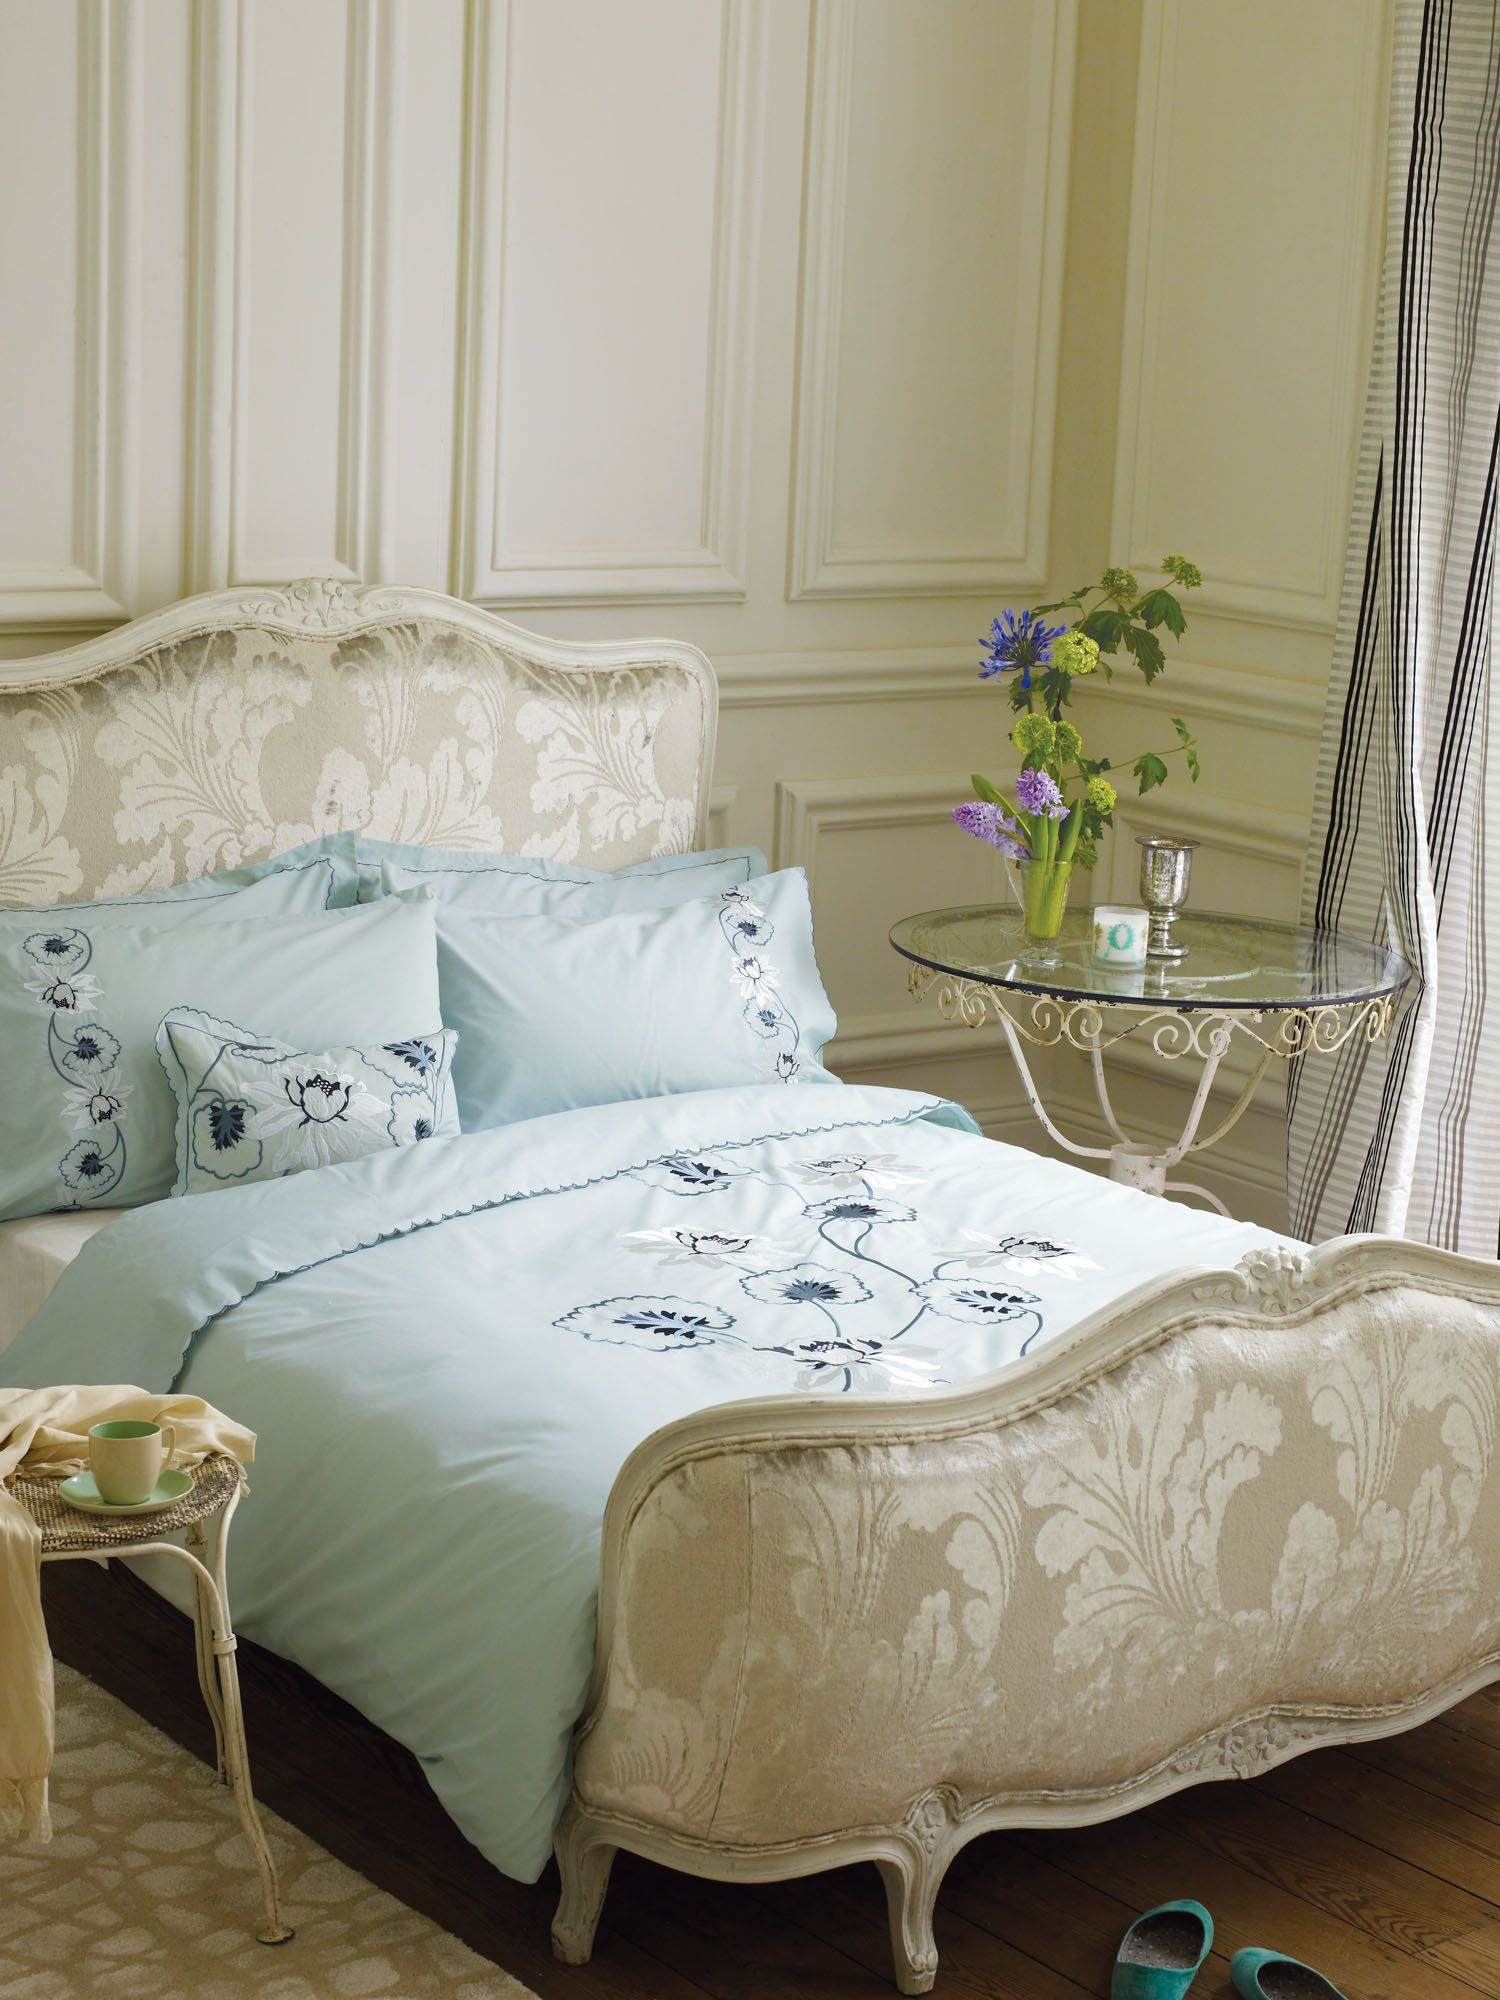 Baudard bed linen range in aqua